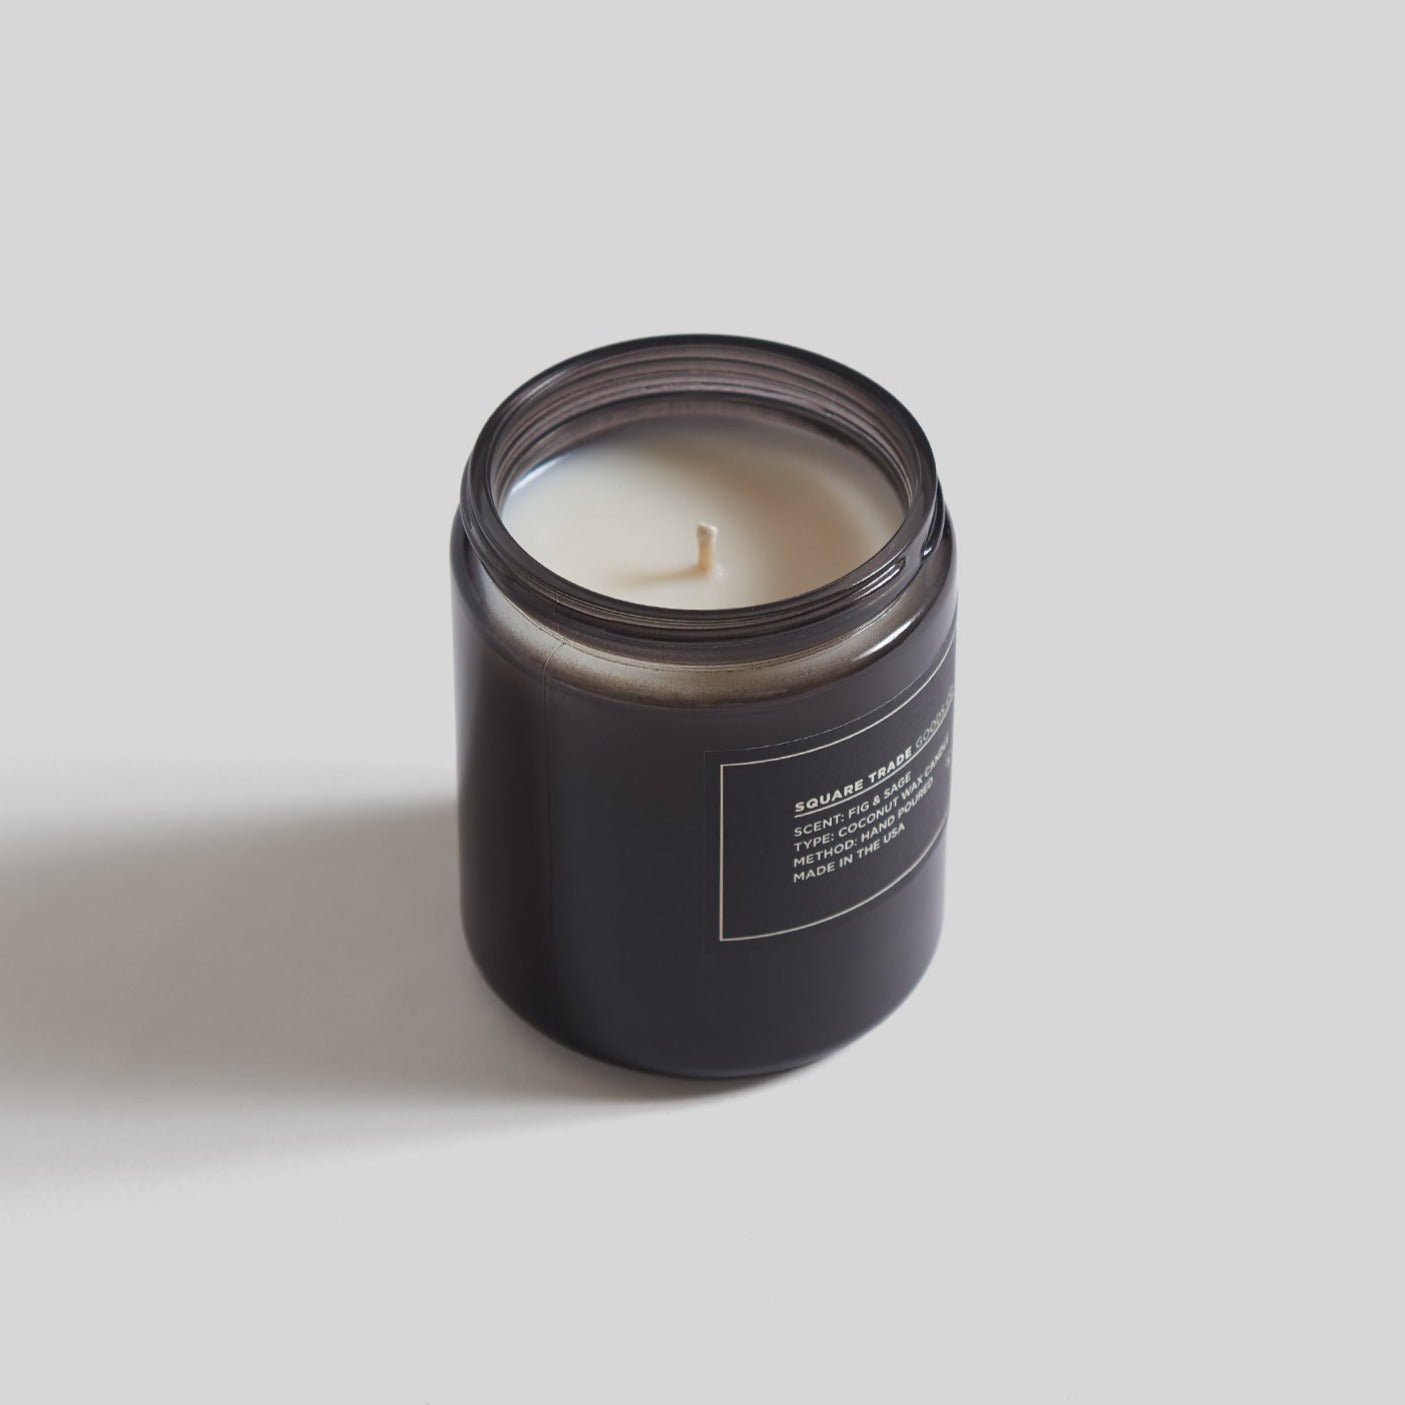 Square Trade Goods 8 oz Candle - Fig & Sage